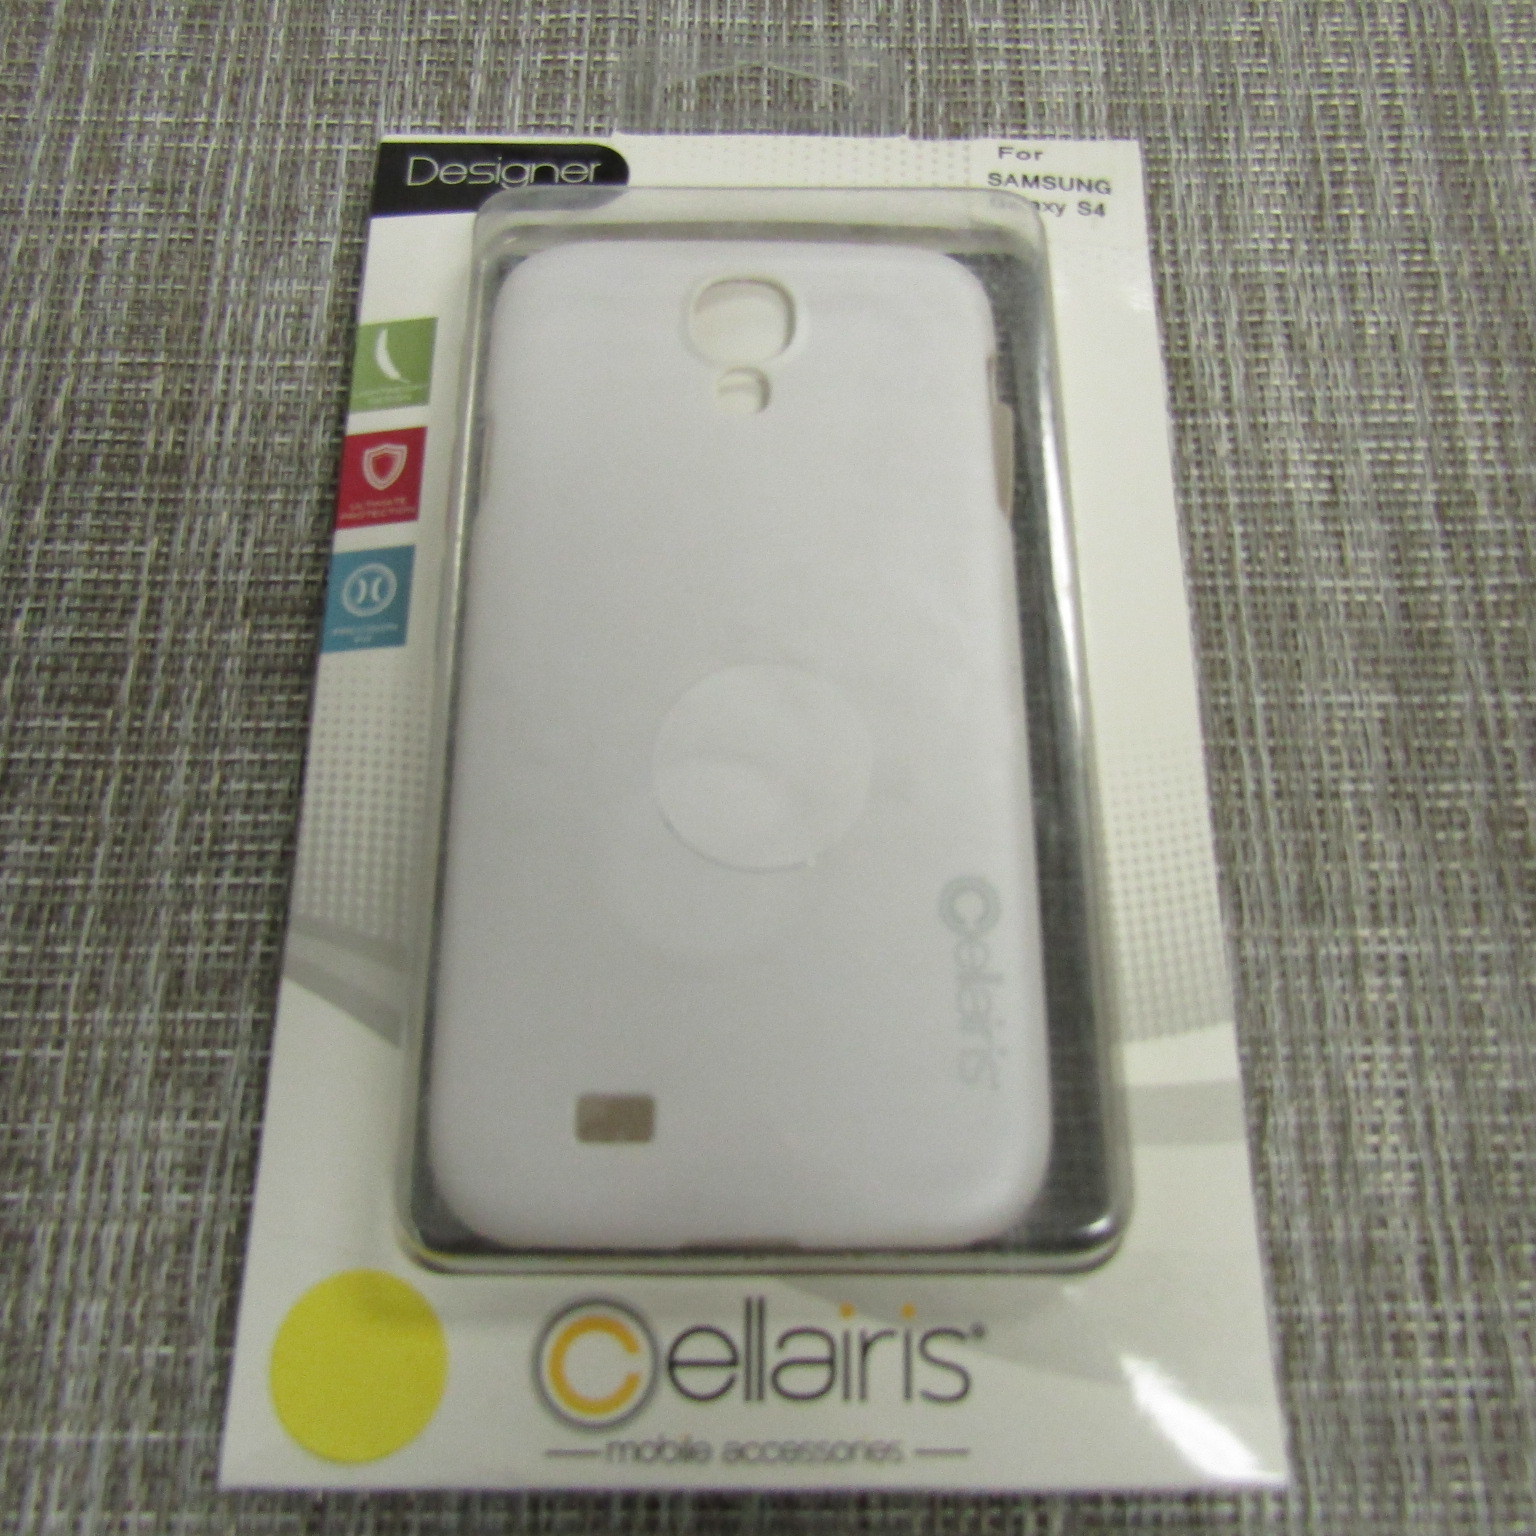 Cellairis Mobile Accessories for the Samsung Galaxy s4